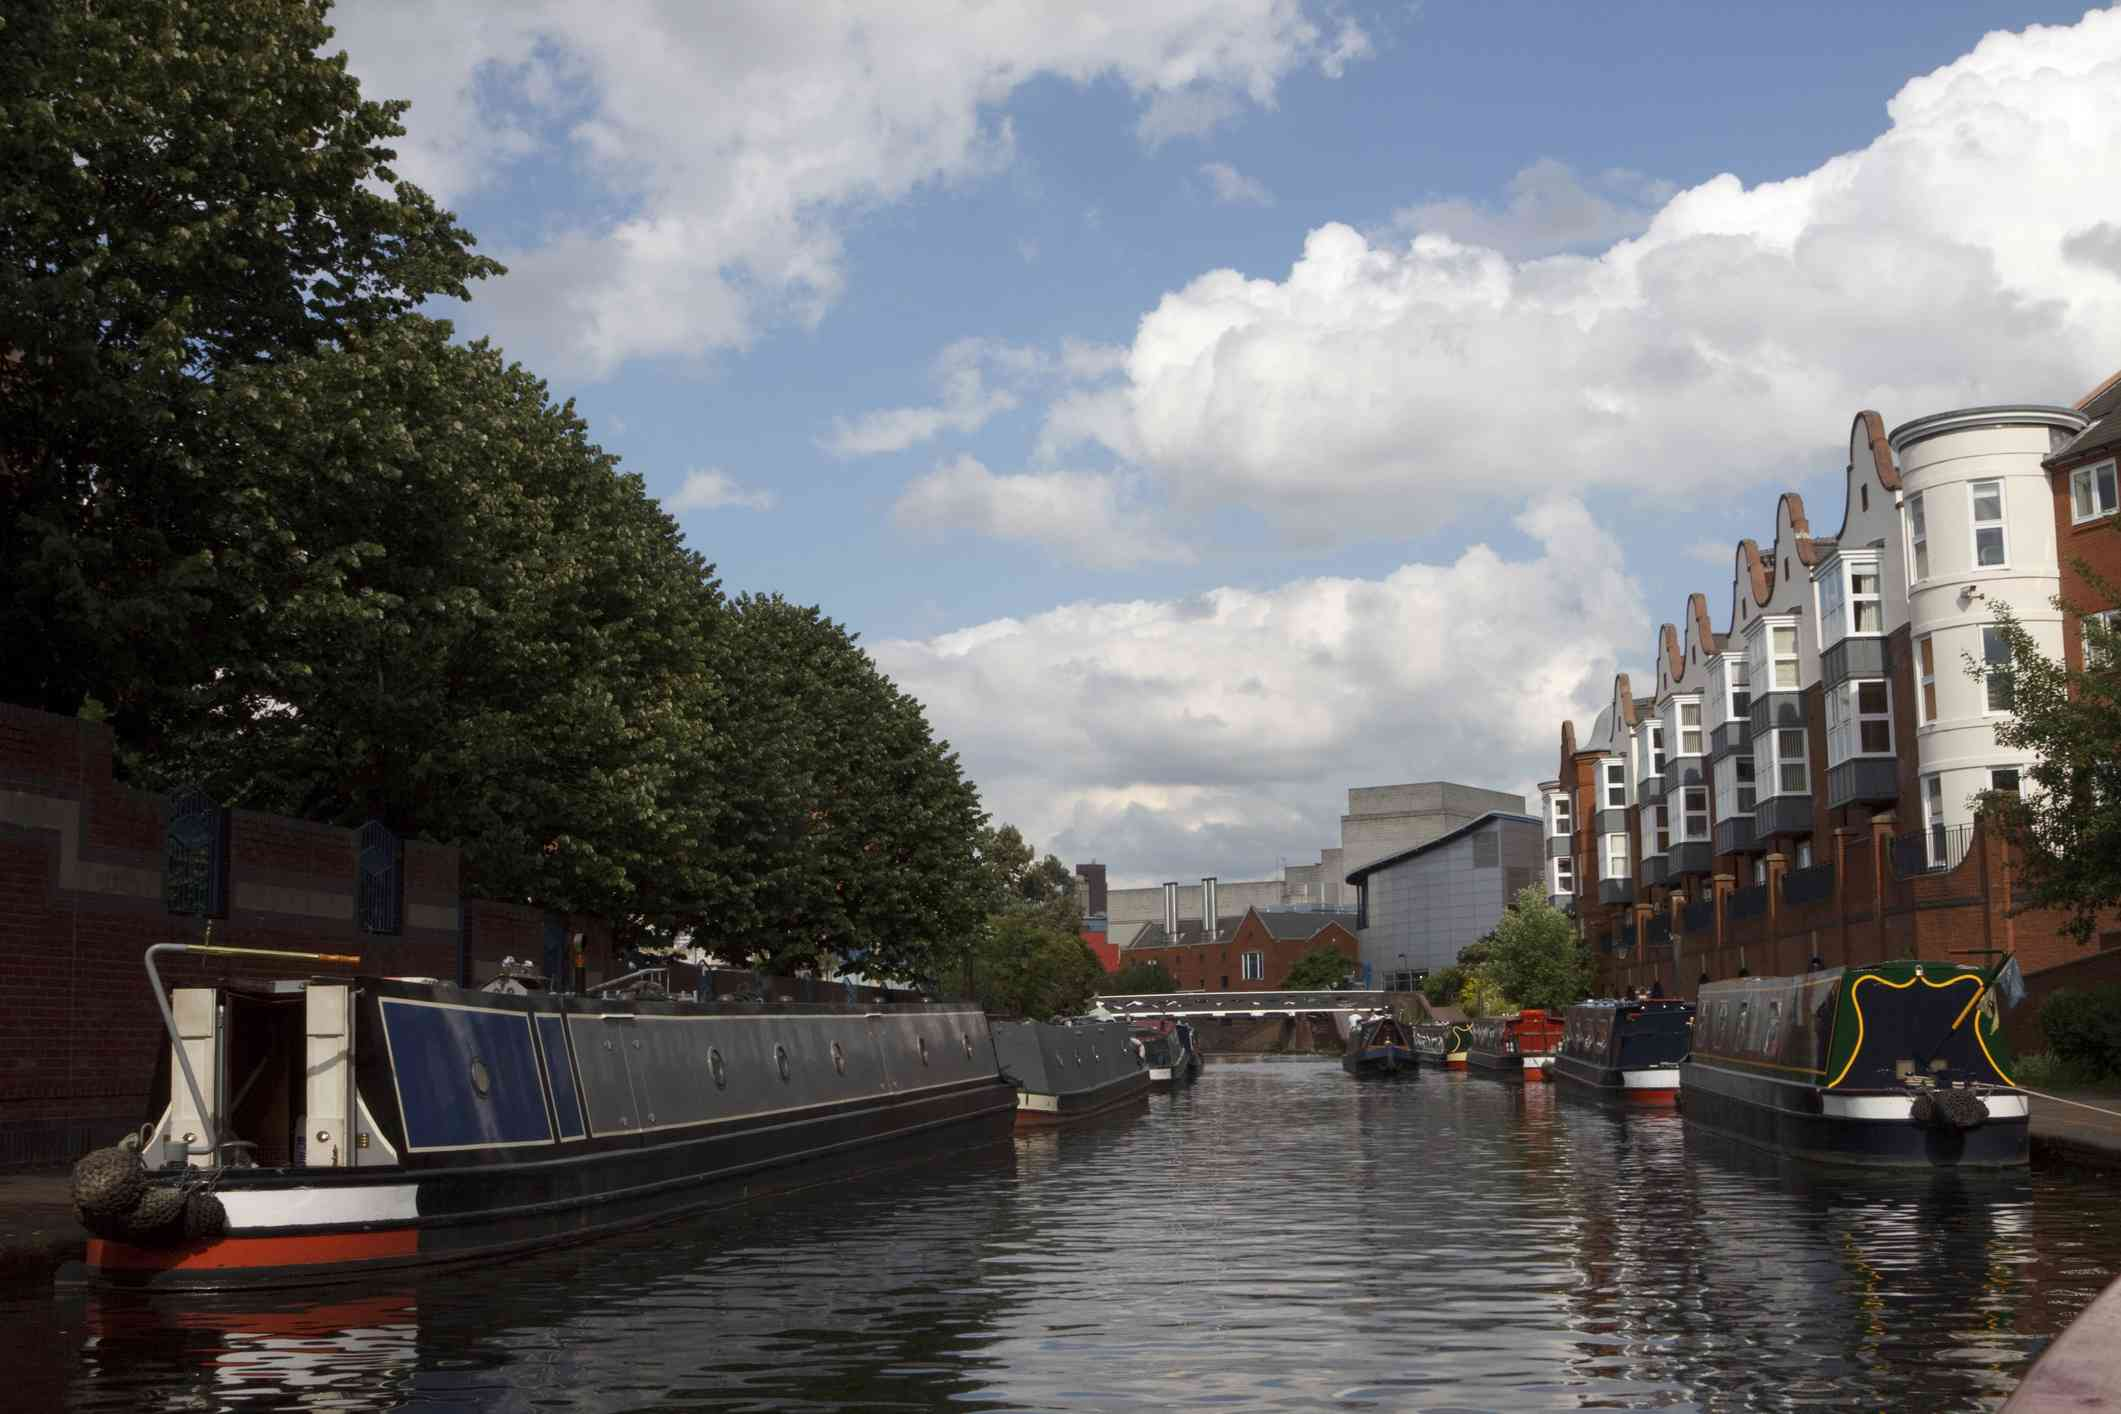 canal in Birmingham,England with buildings on one side and trees on the other